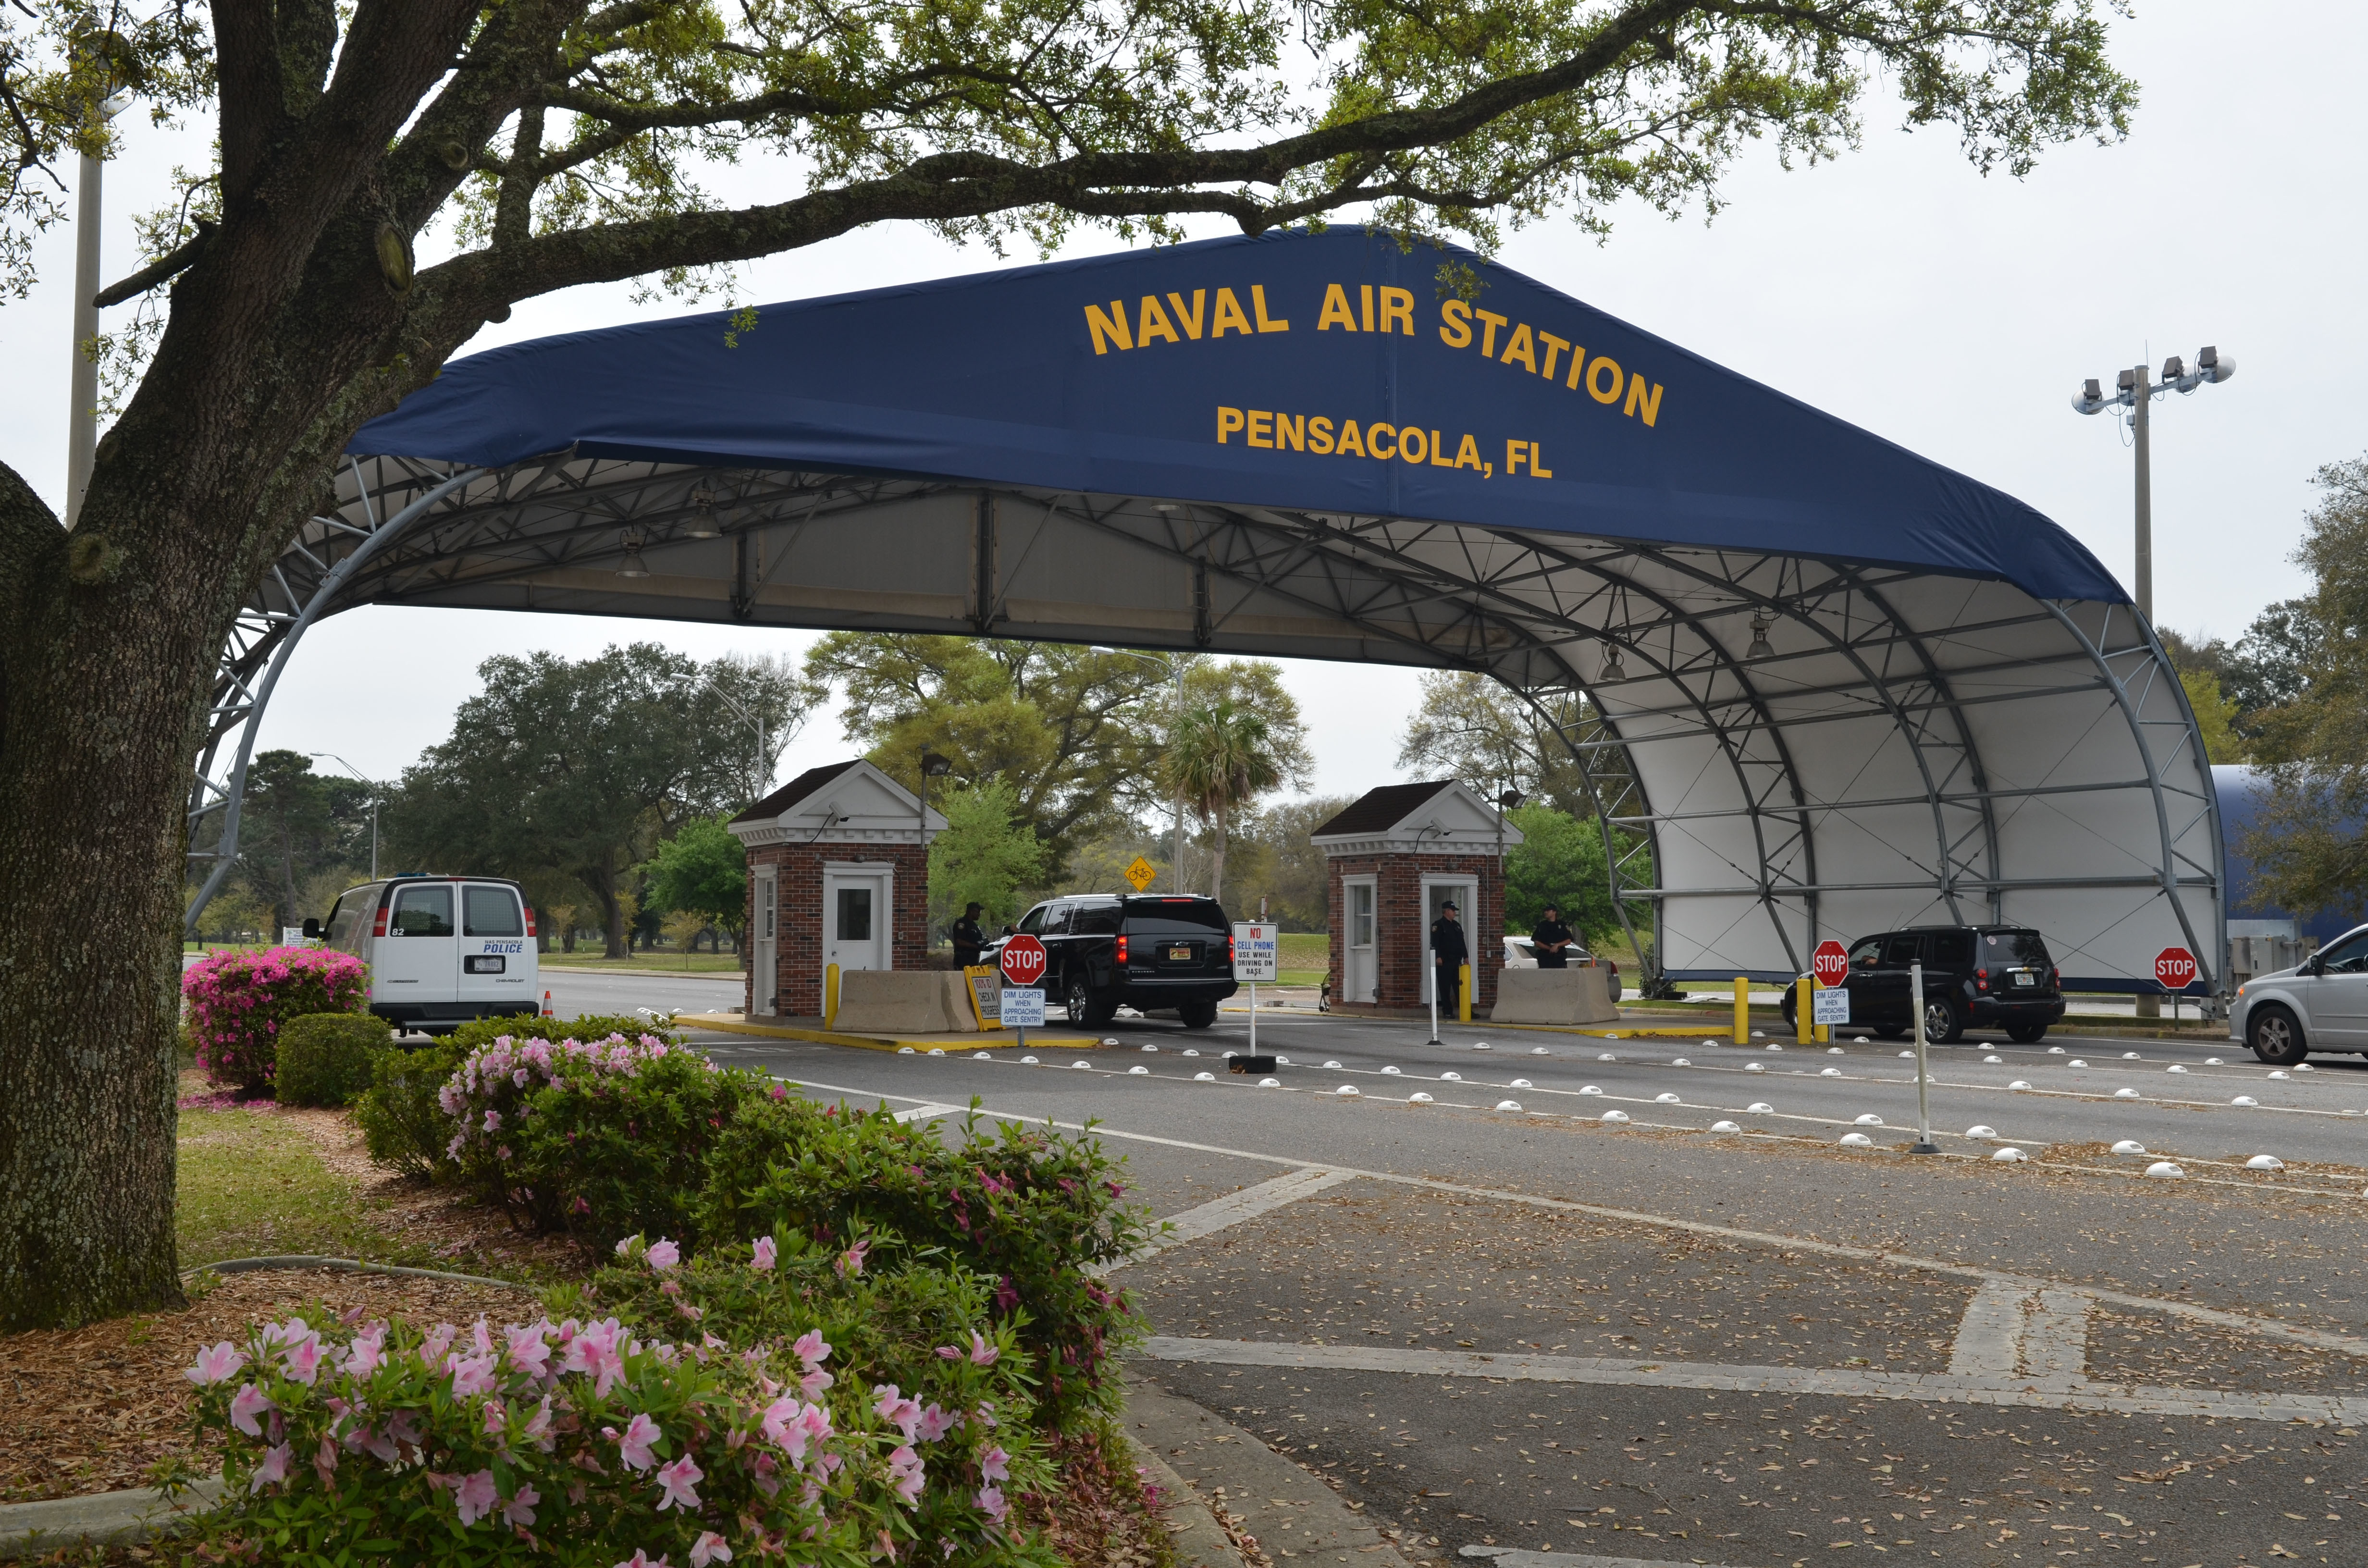 The main gate at Naval Air Station Pensacola is seen March 16, 2016, in Pensacola, Fla. (Patrick Nichols/Navy)